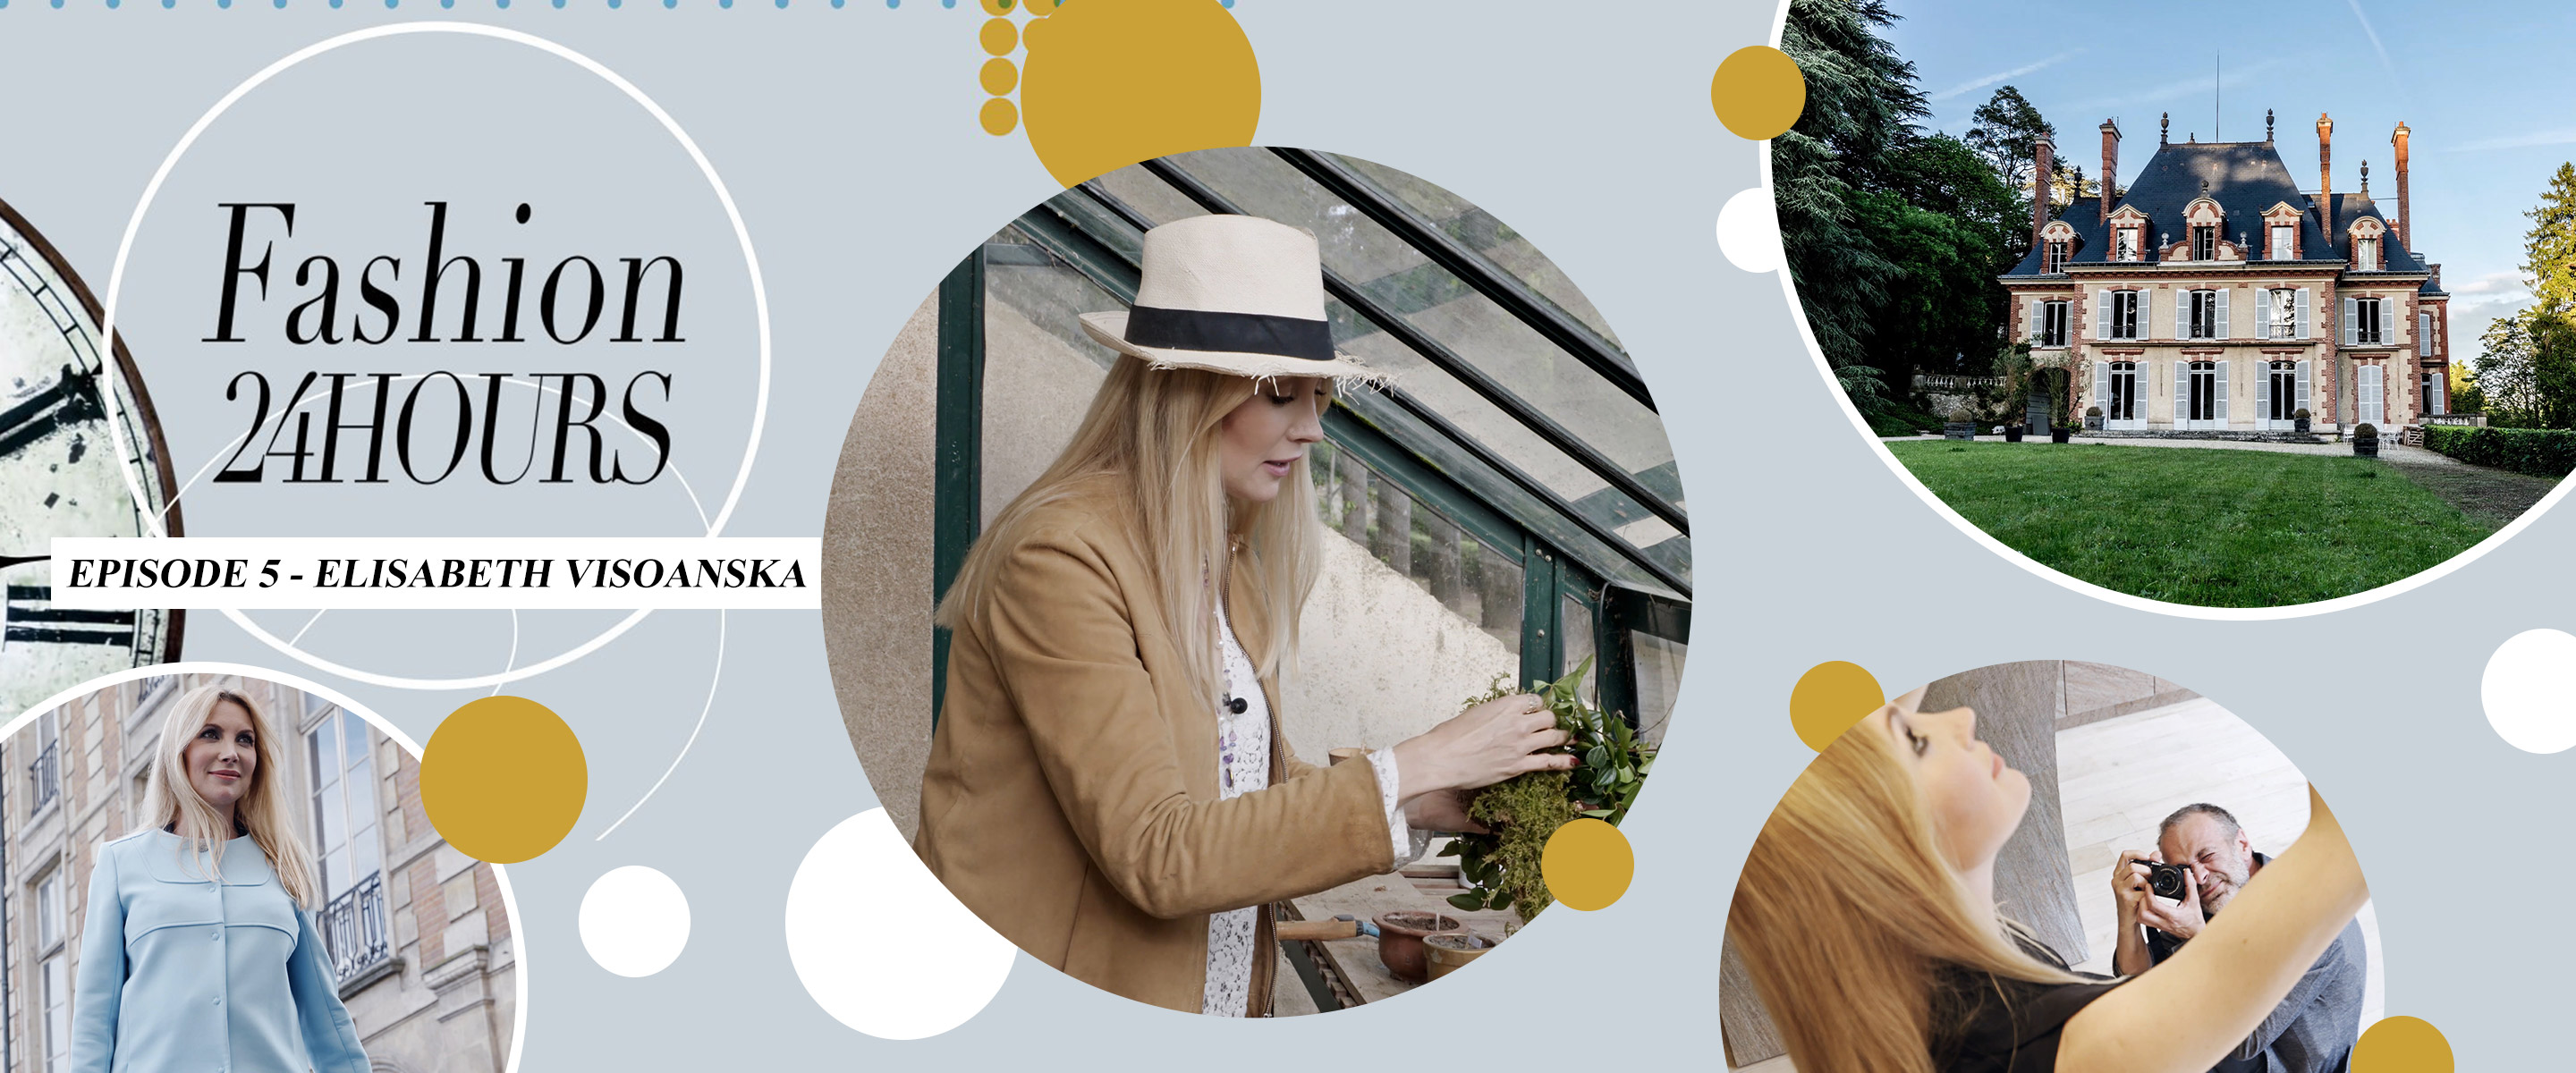 Teaser A Day in the Life of Elisabeth Visoanska on Fashion 24 Hours TV